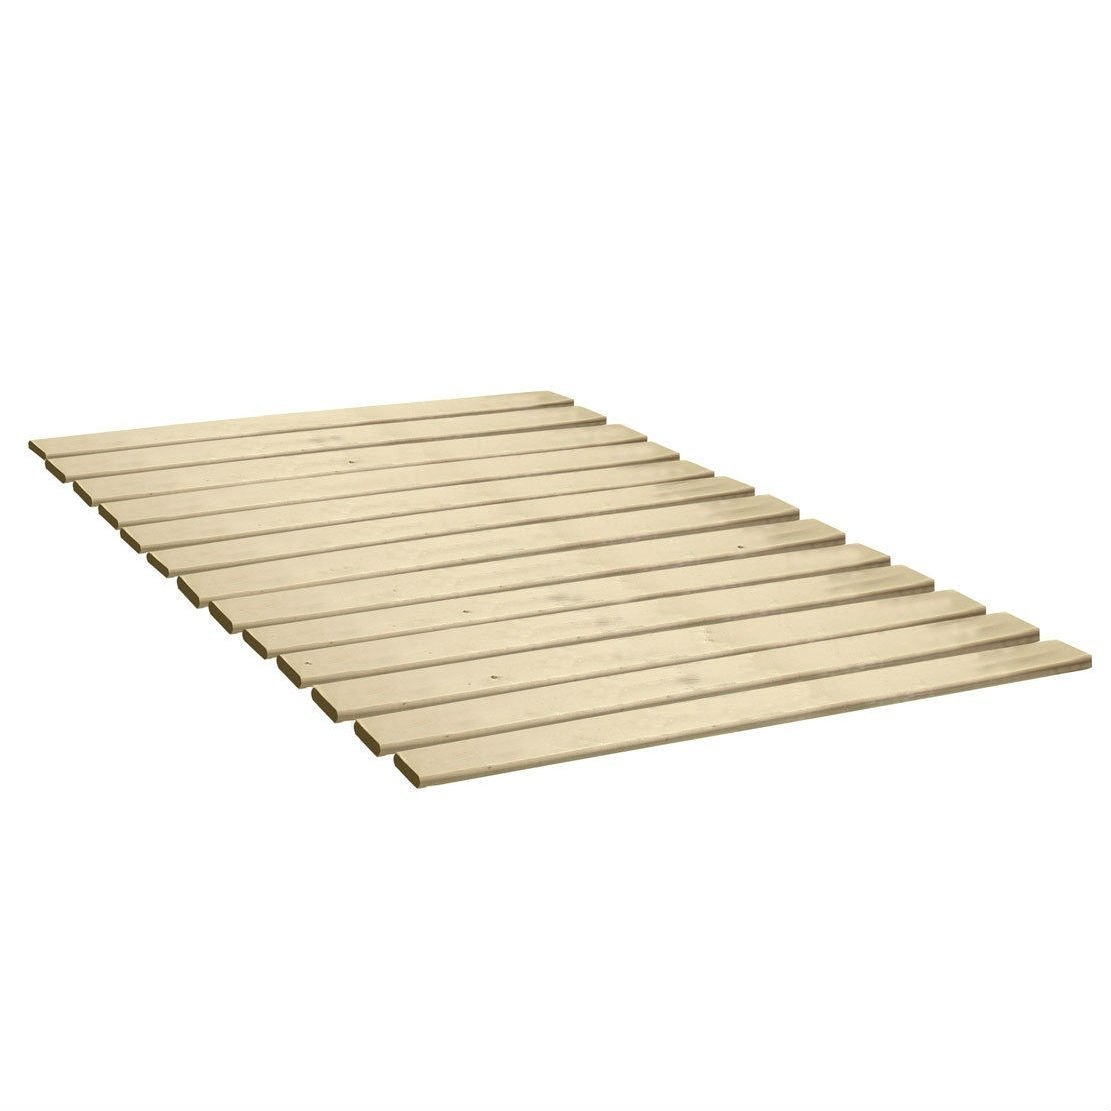 Twin size Heavy Duty Wooden Bed Slats - Made in USA.